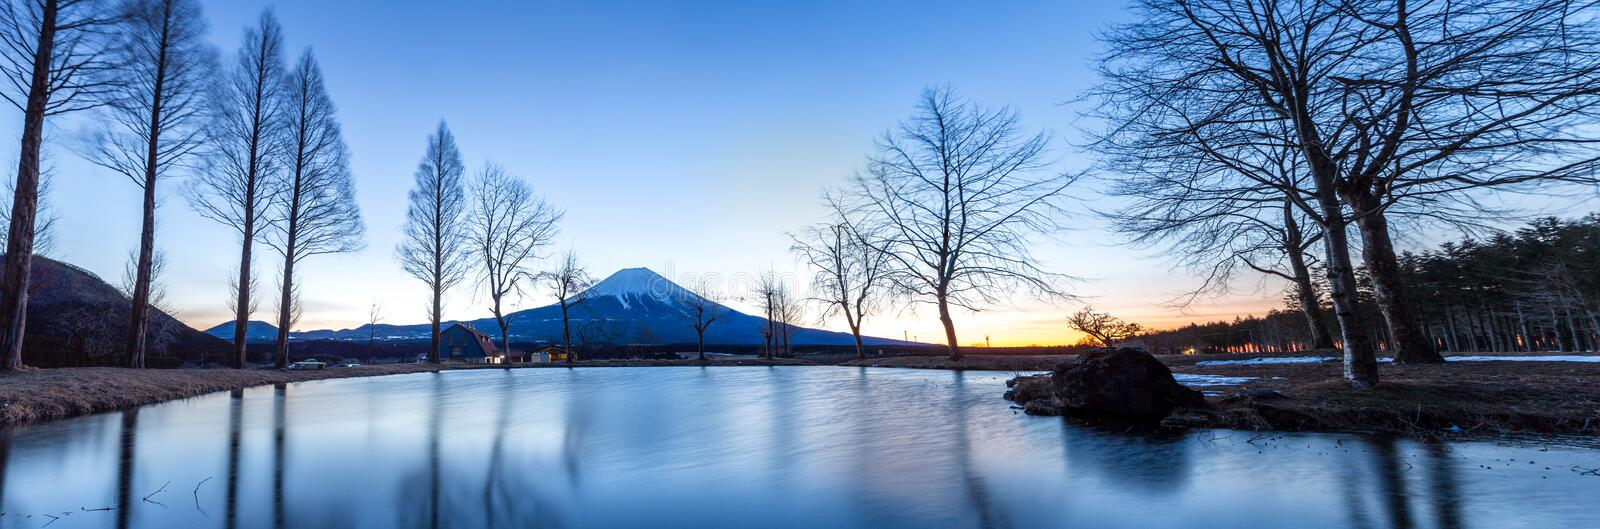 Mount Fuji Fujisan Sunrise royalty free stock photography